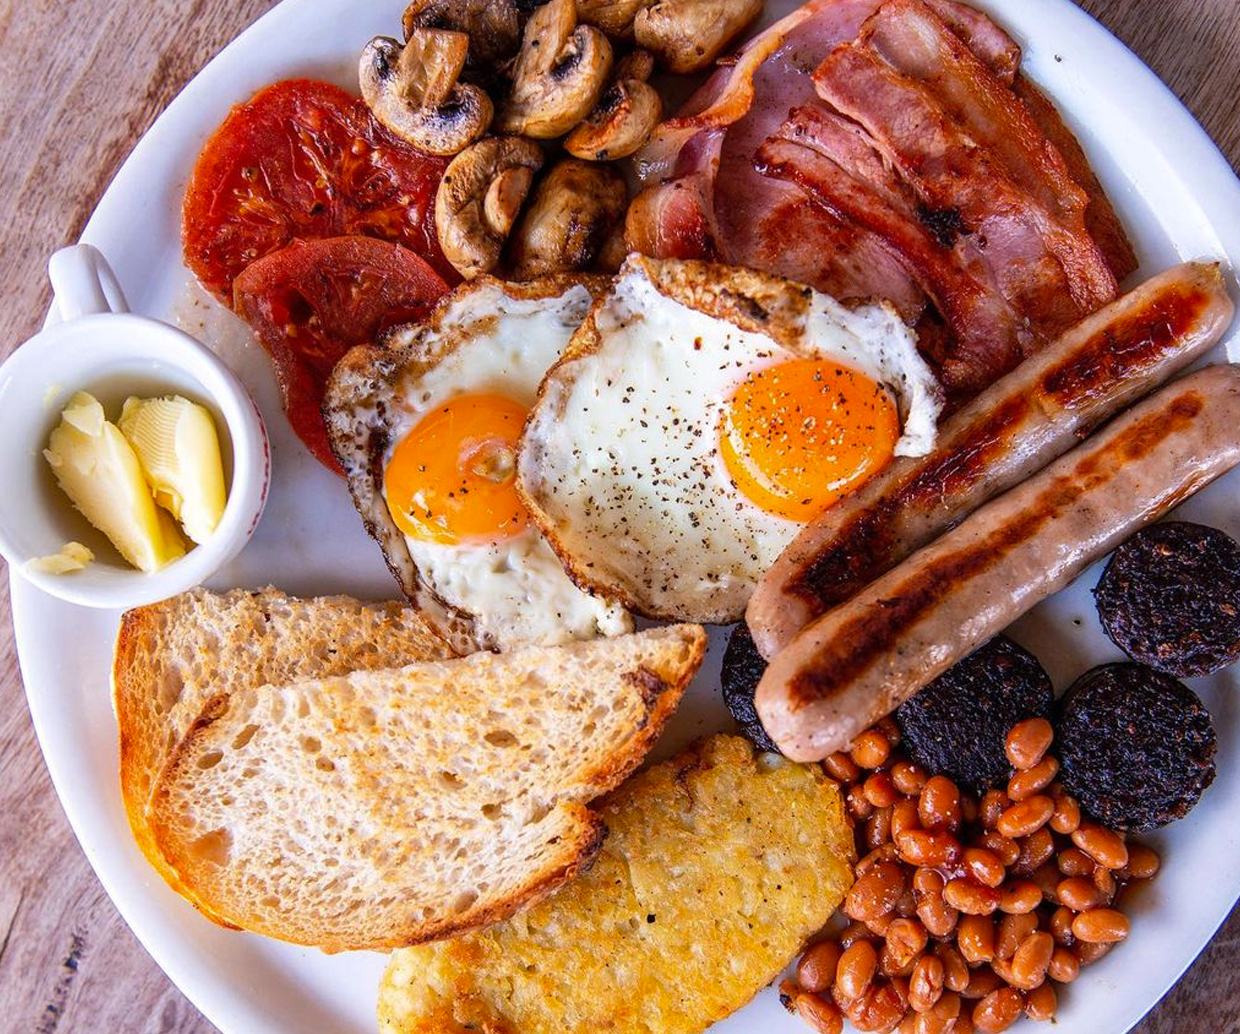 beans, sausages, eggs, bacon on a plate